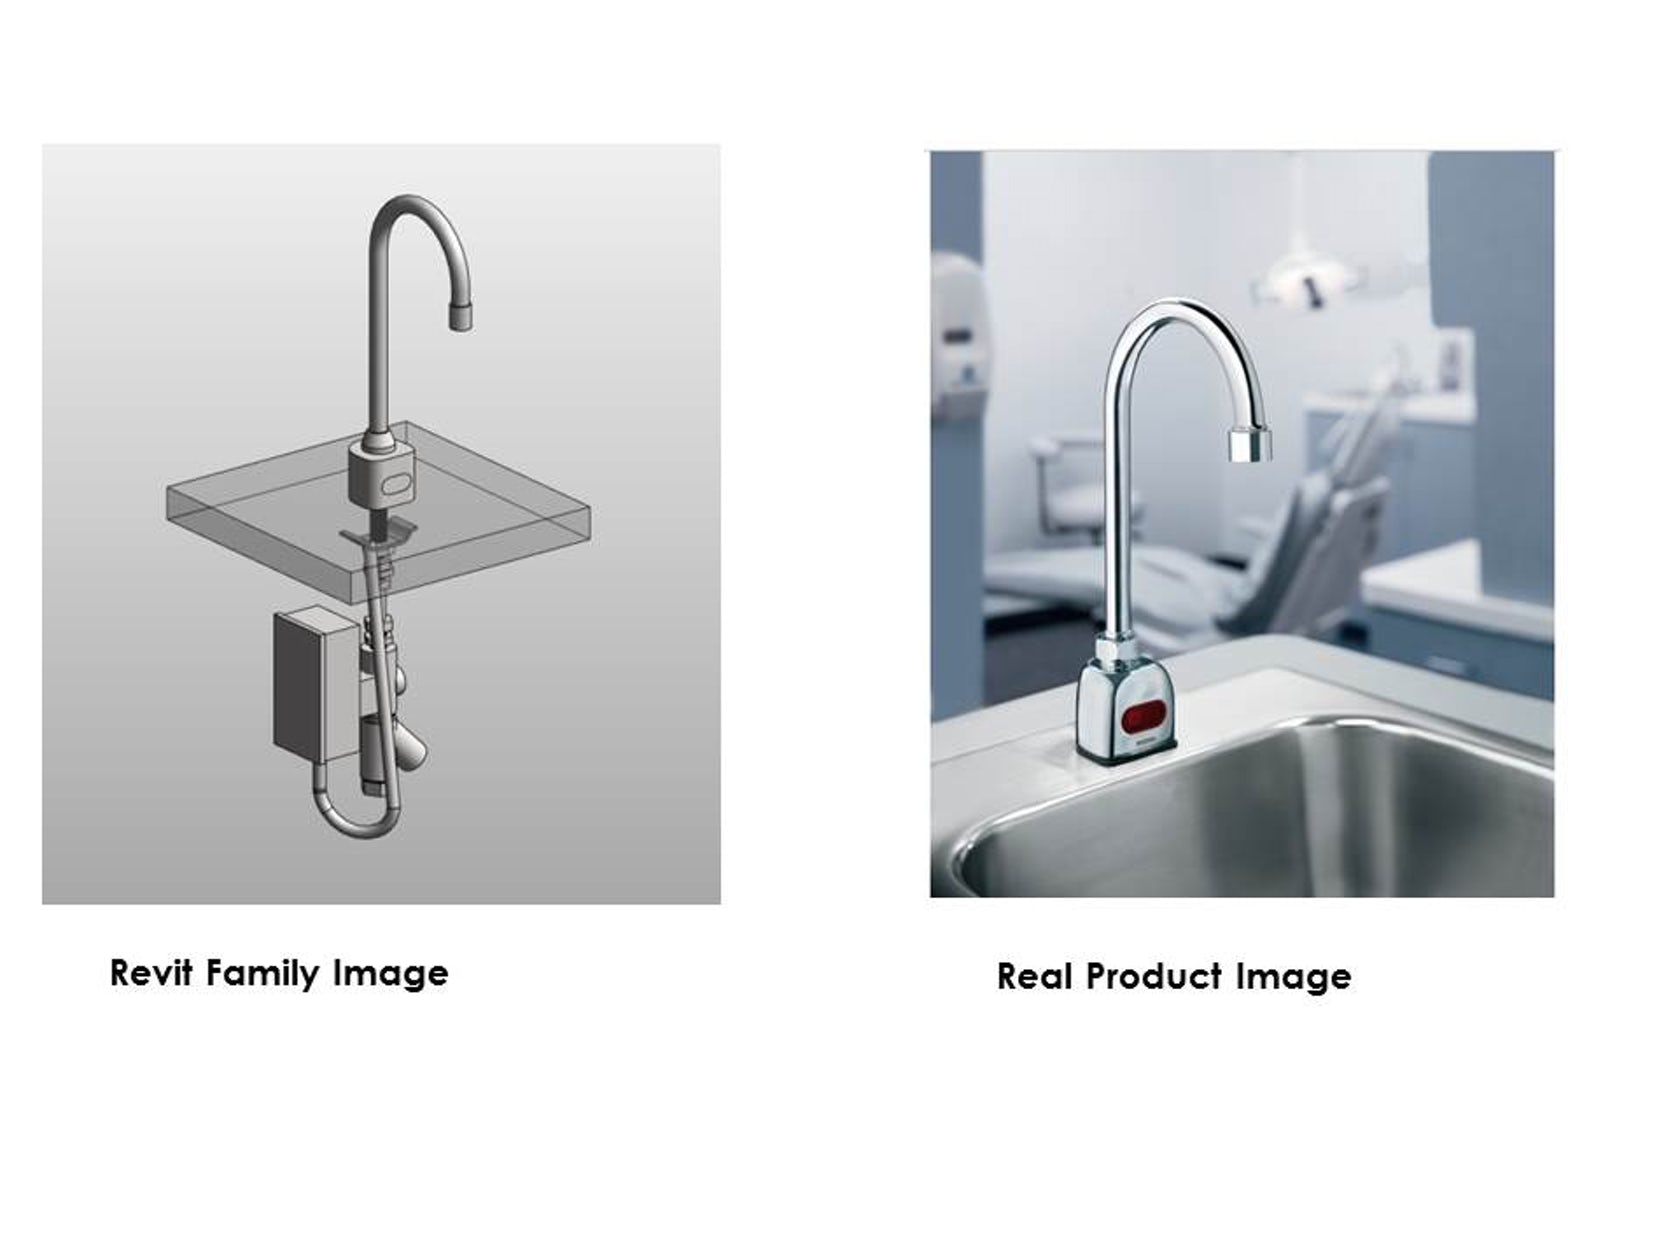 150 Revit Families of Plumbing Products for Manufacturer in North